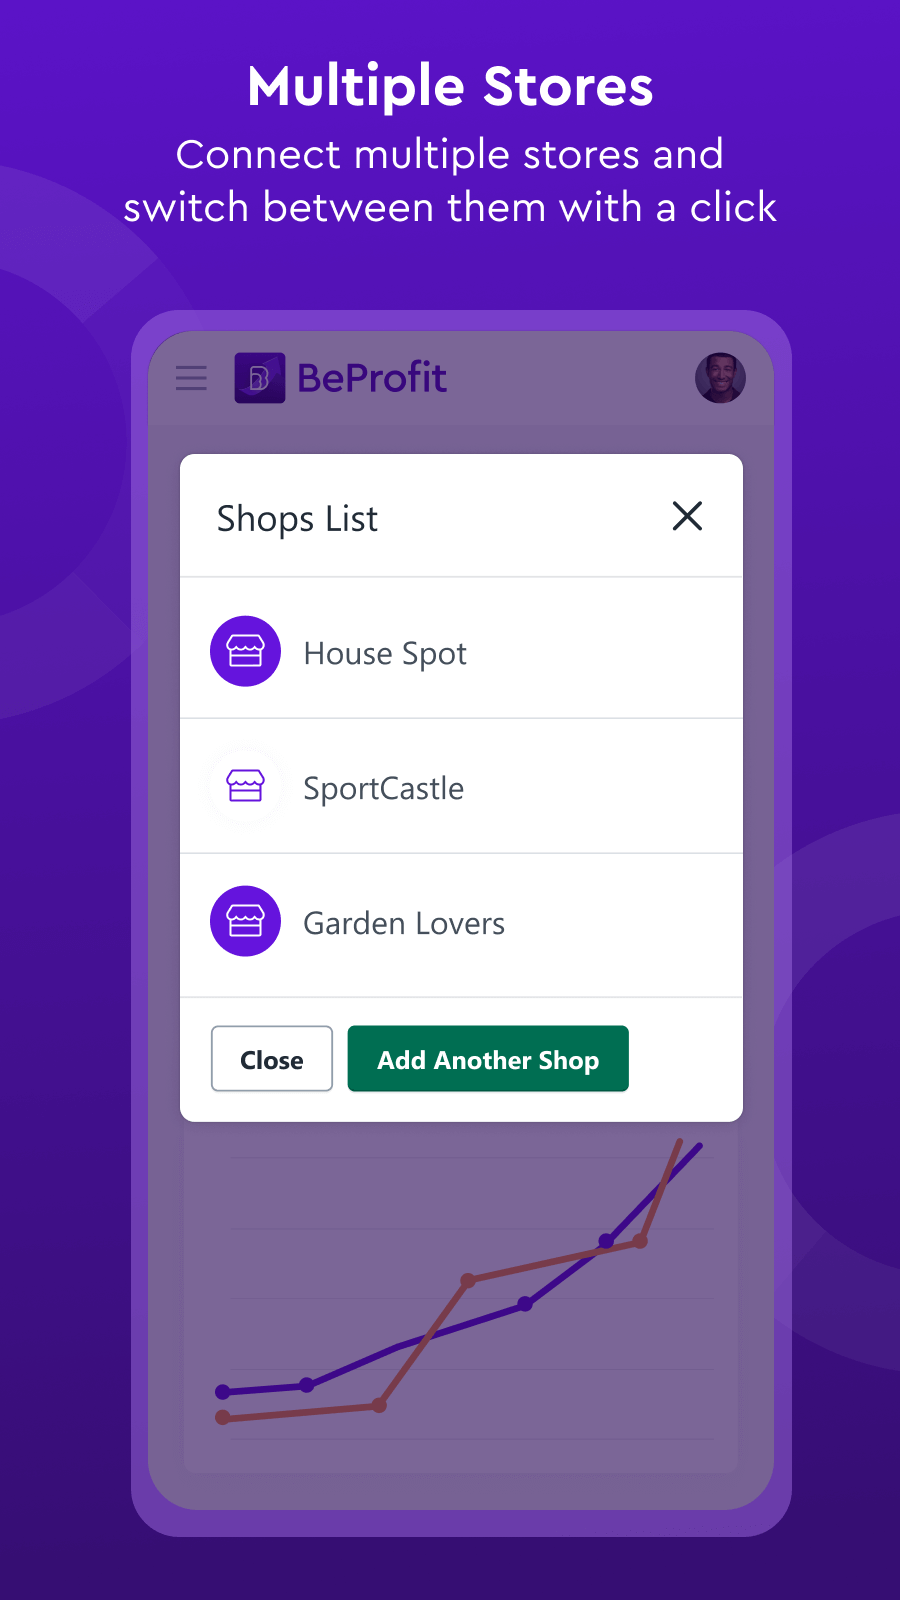 Connect multiple stores and switch between them with one click